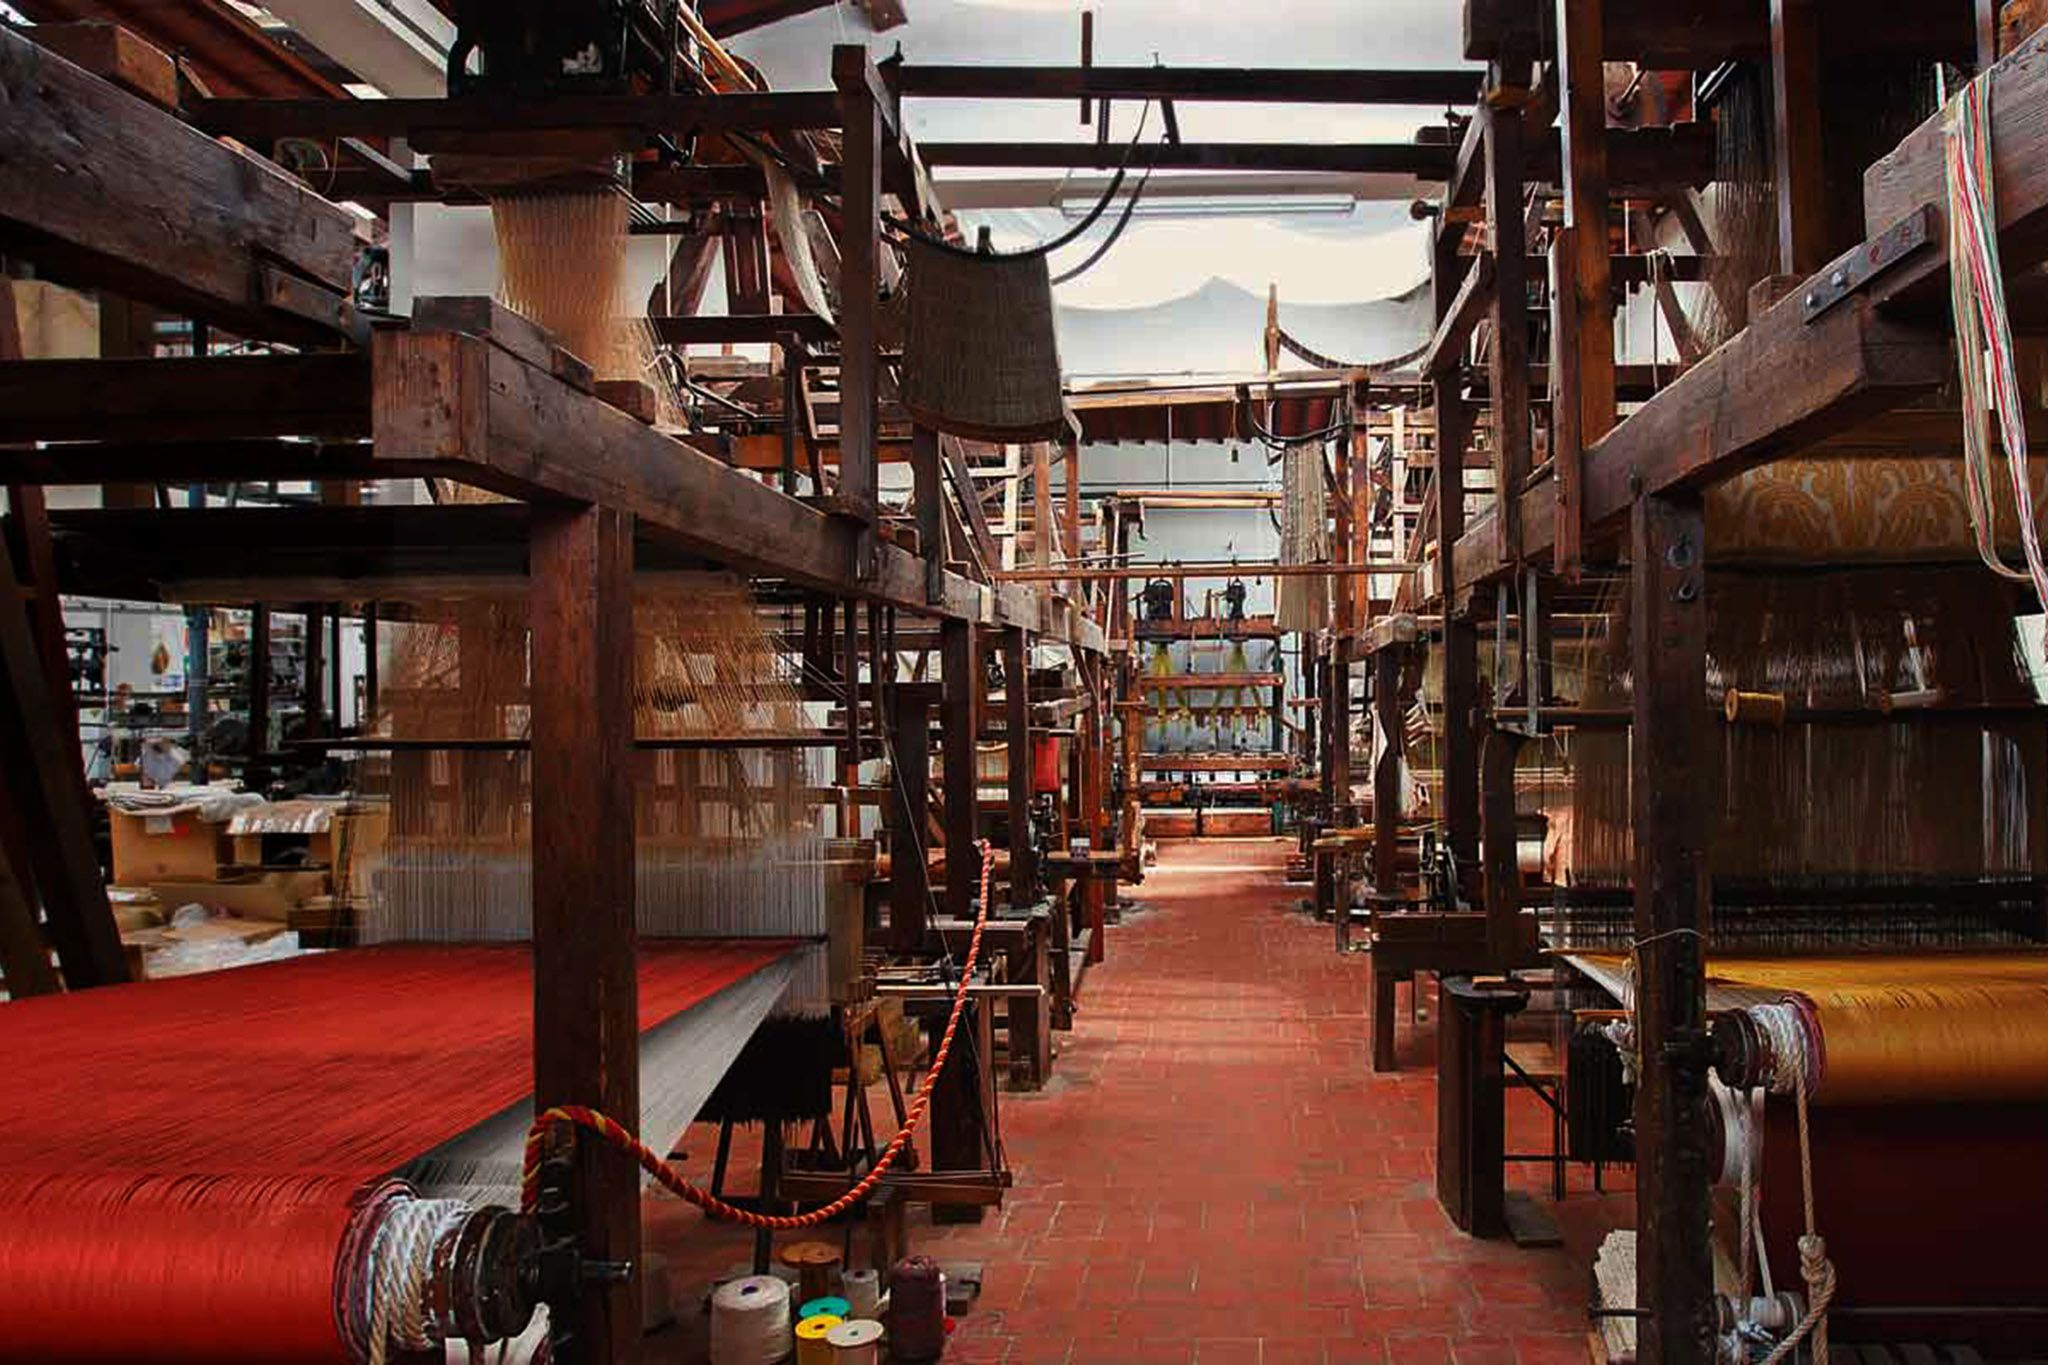 Ancient looms still producing excellent cloth in Florence.